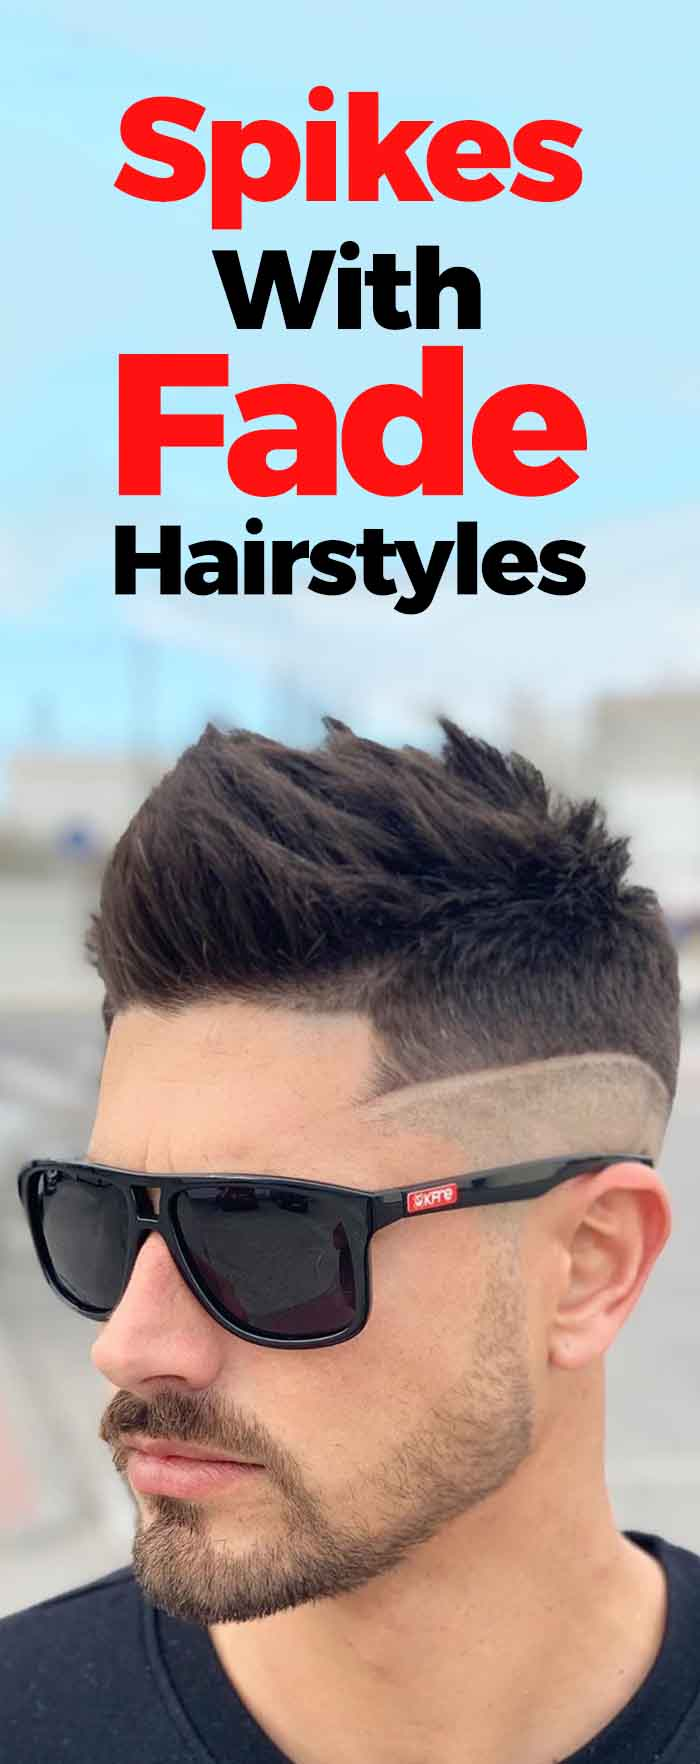 Spikes With Fade Haircut